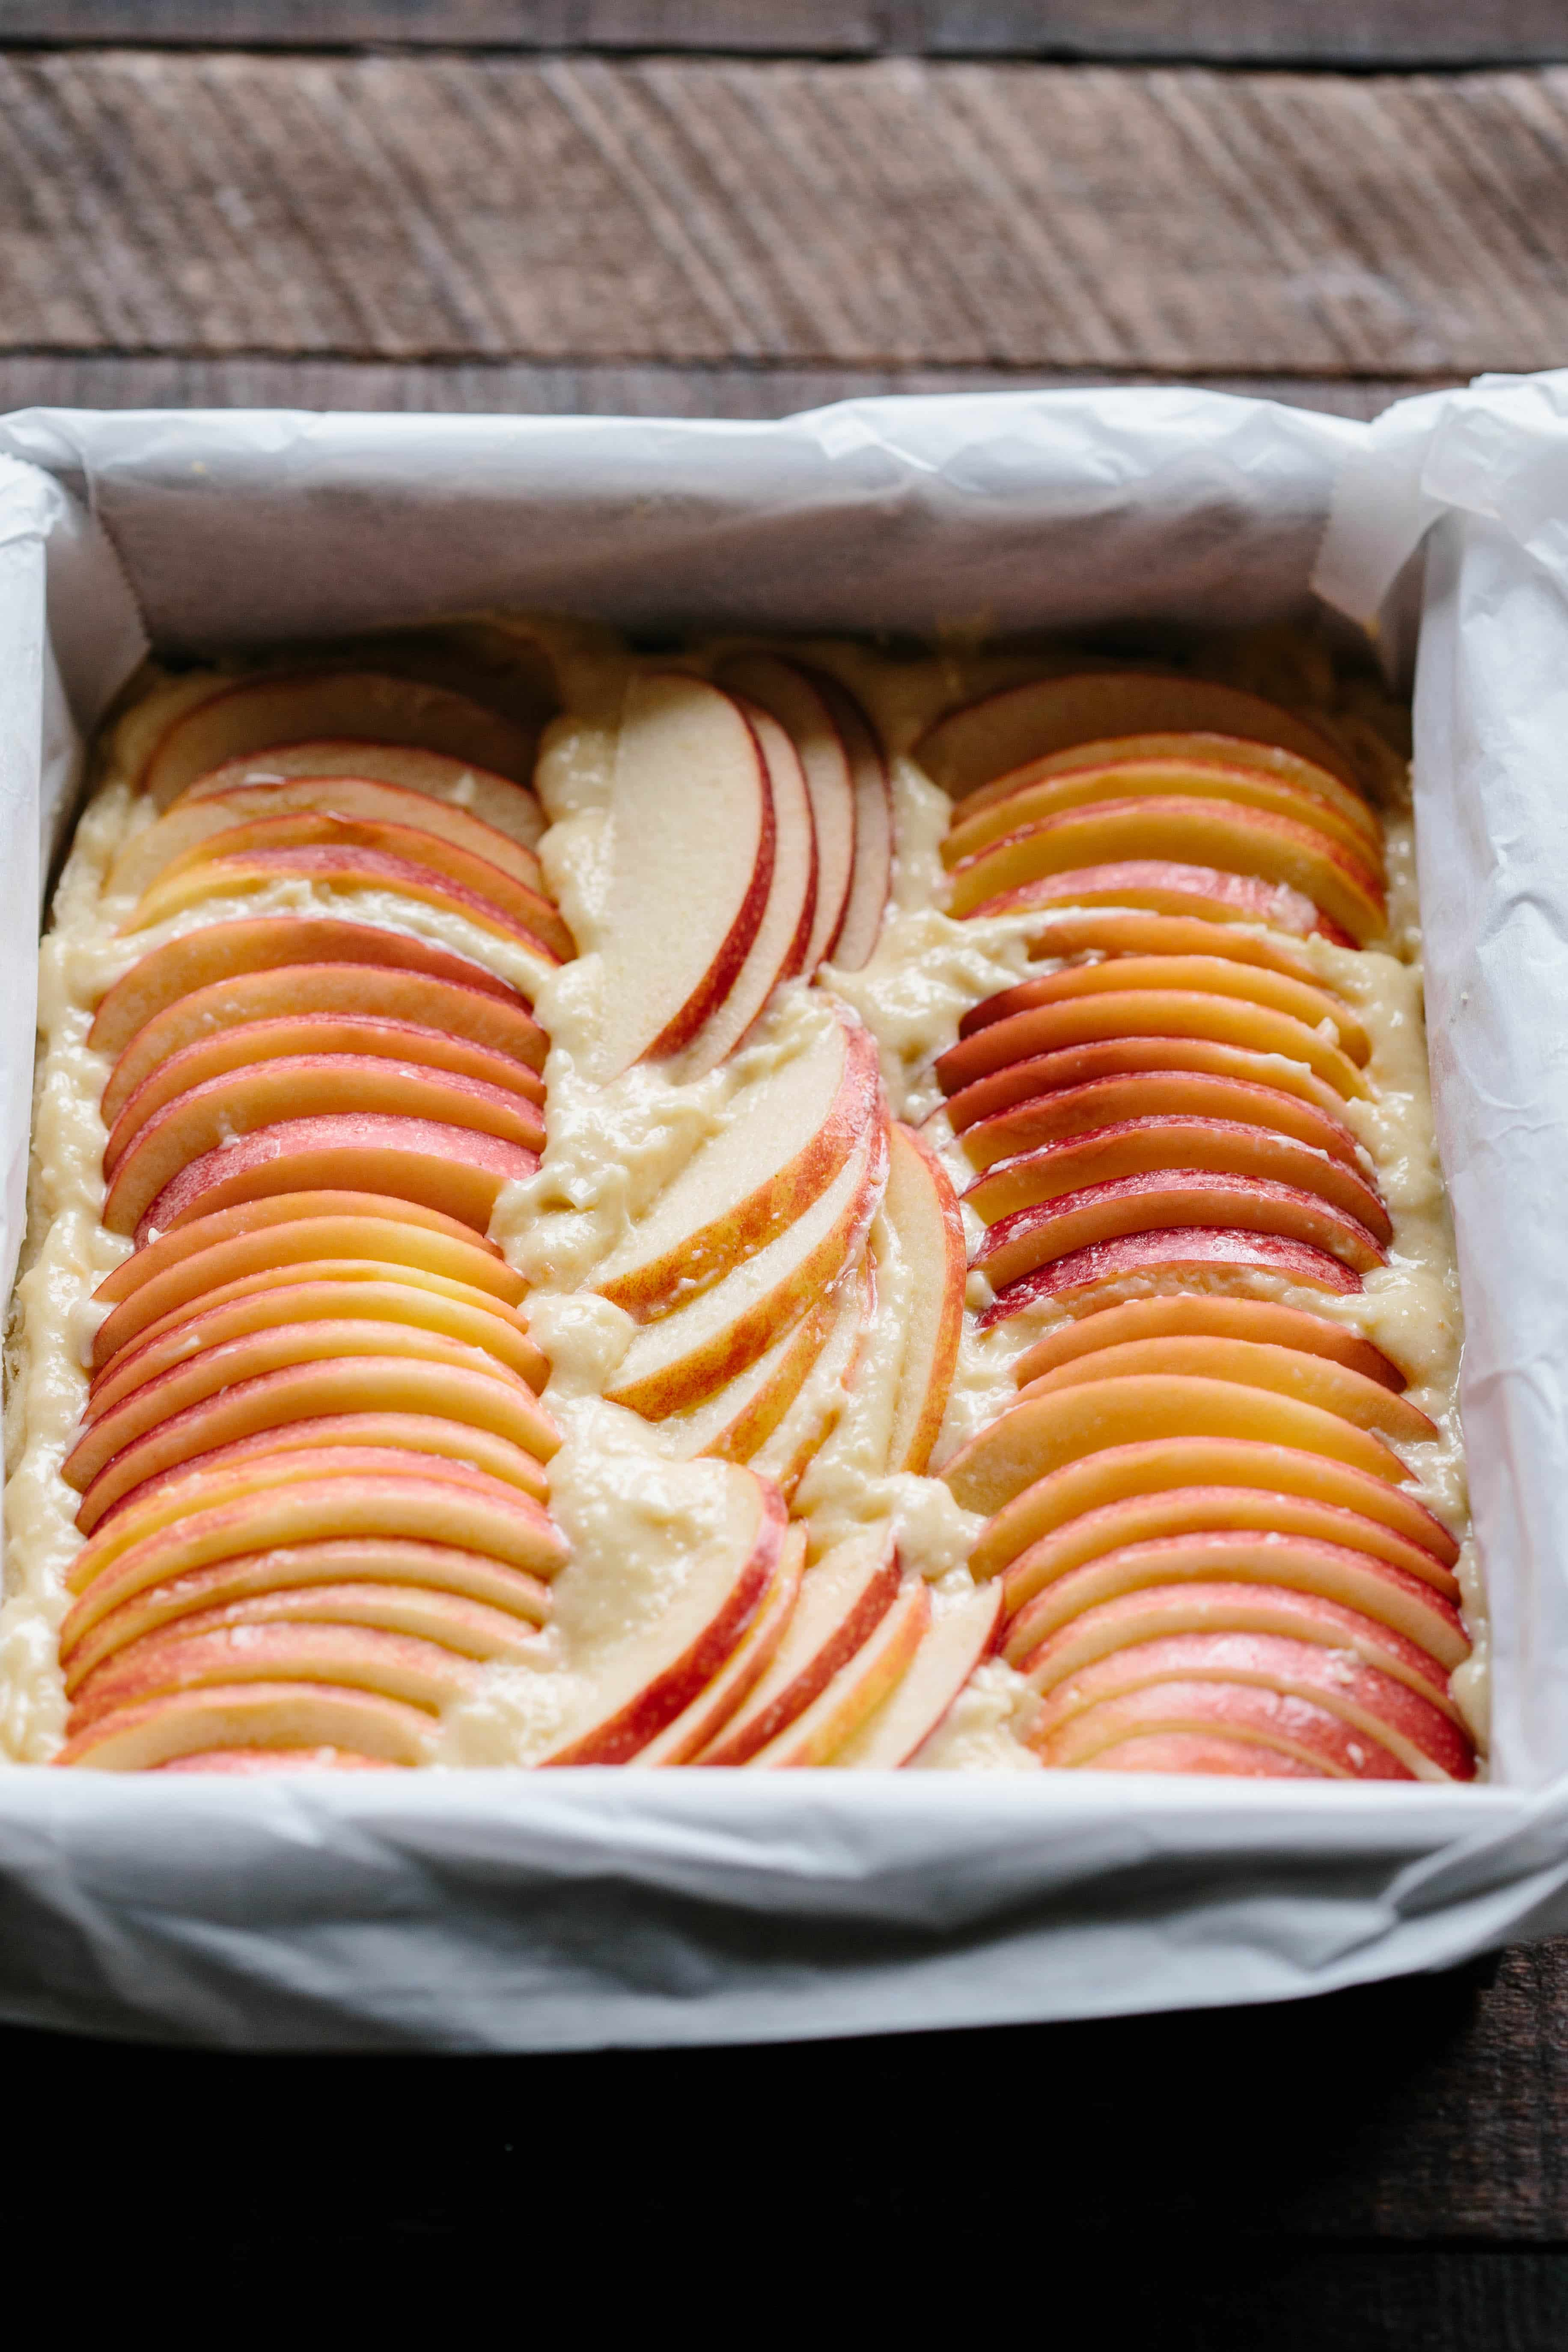 Thinly sliced apples lines up in a square baking pan of shortbread batter.